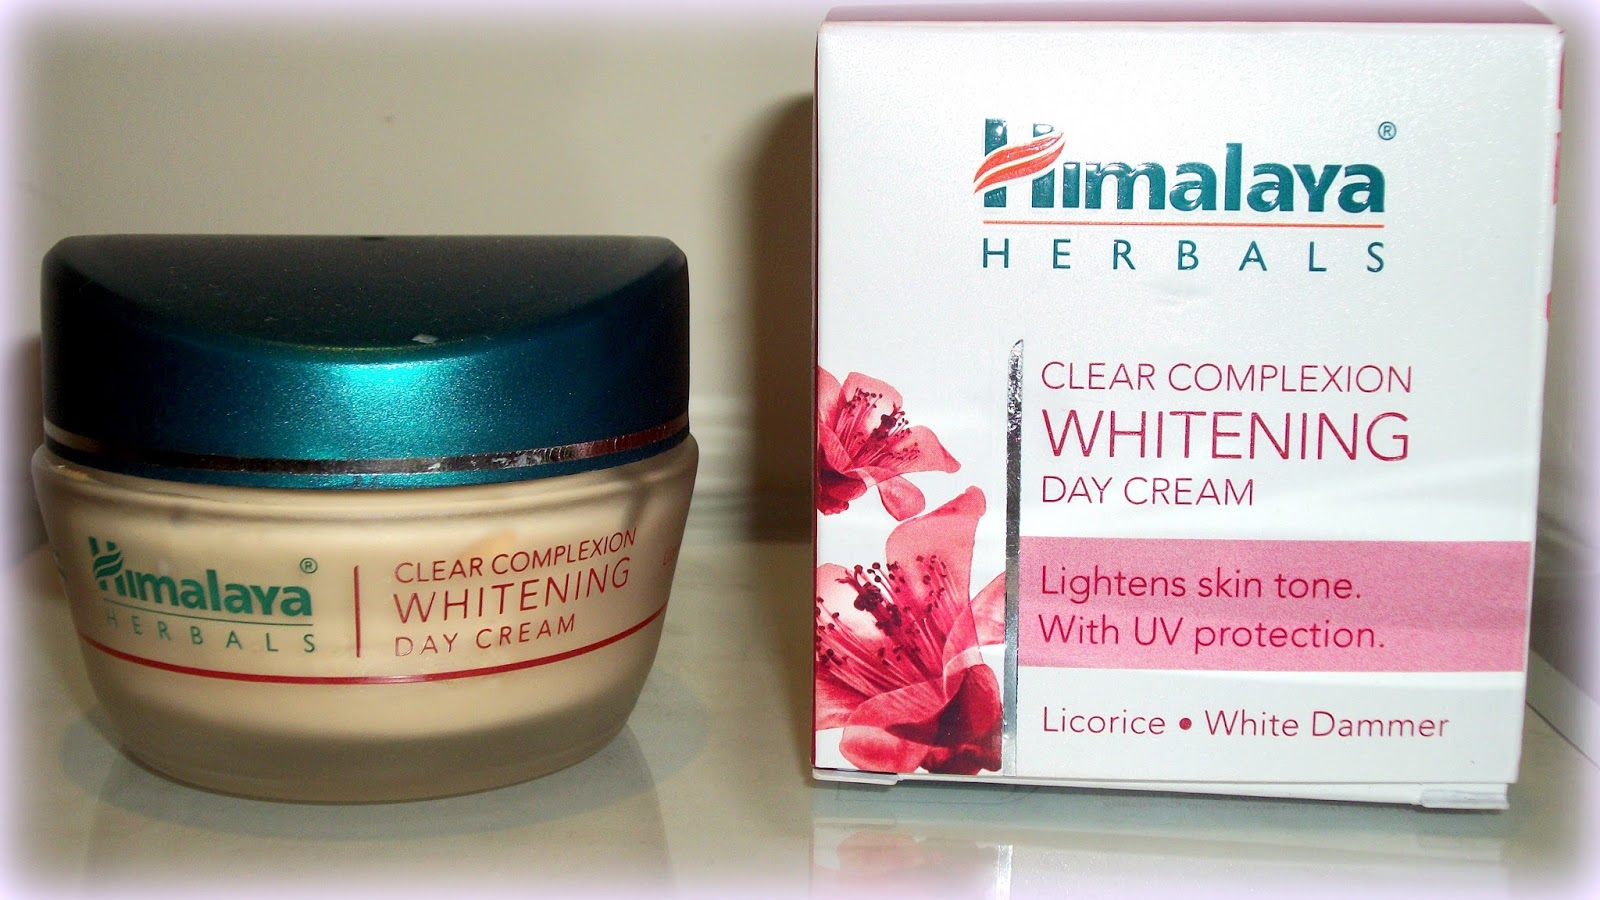 Himalaya Herbals Clear Complexion Whitening Day Cream-Fairness.-By simmi_haswani-3